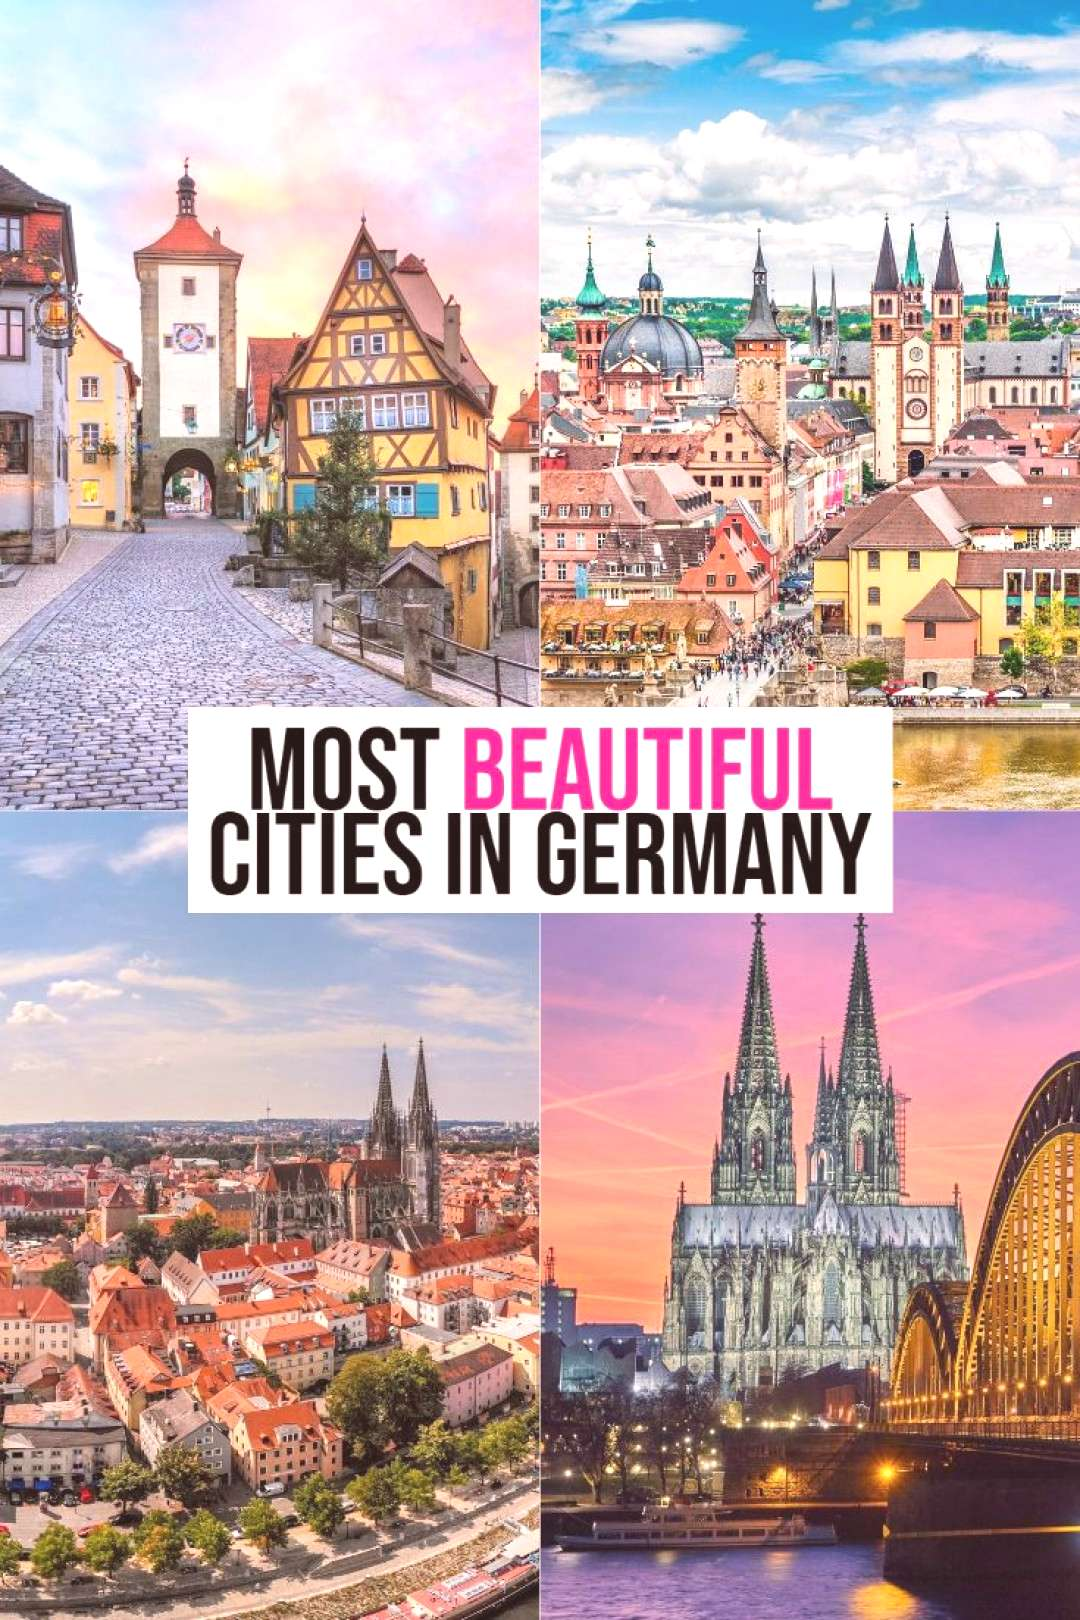 Where To See The MOST BEAUTIFUL Cities In Germany! The Most Beautiful Cities In Germany To Visit! |